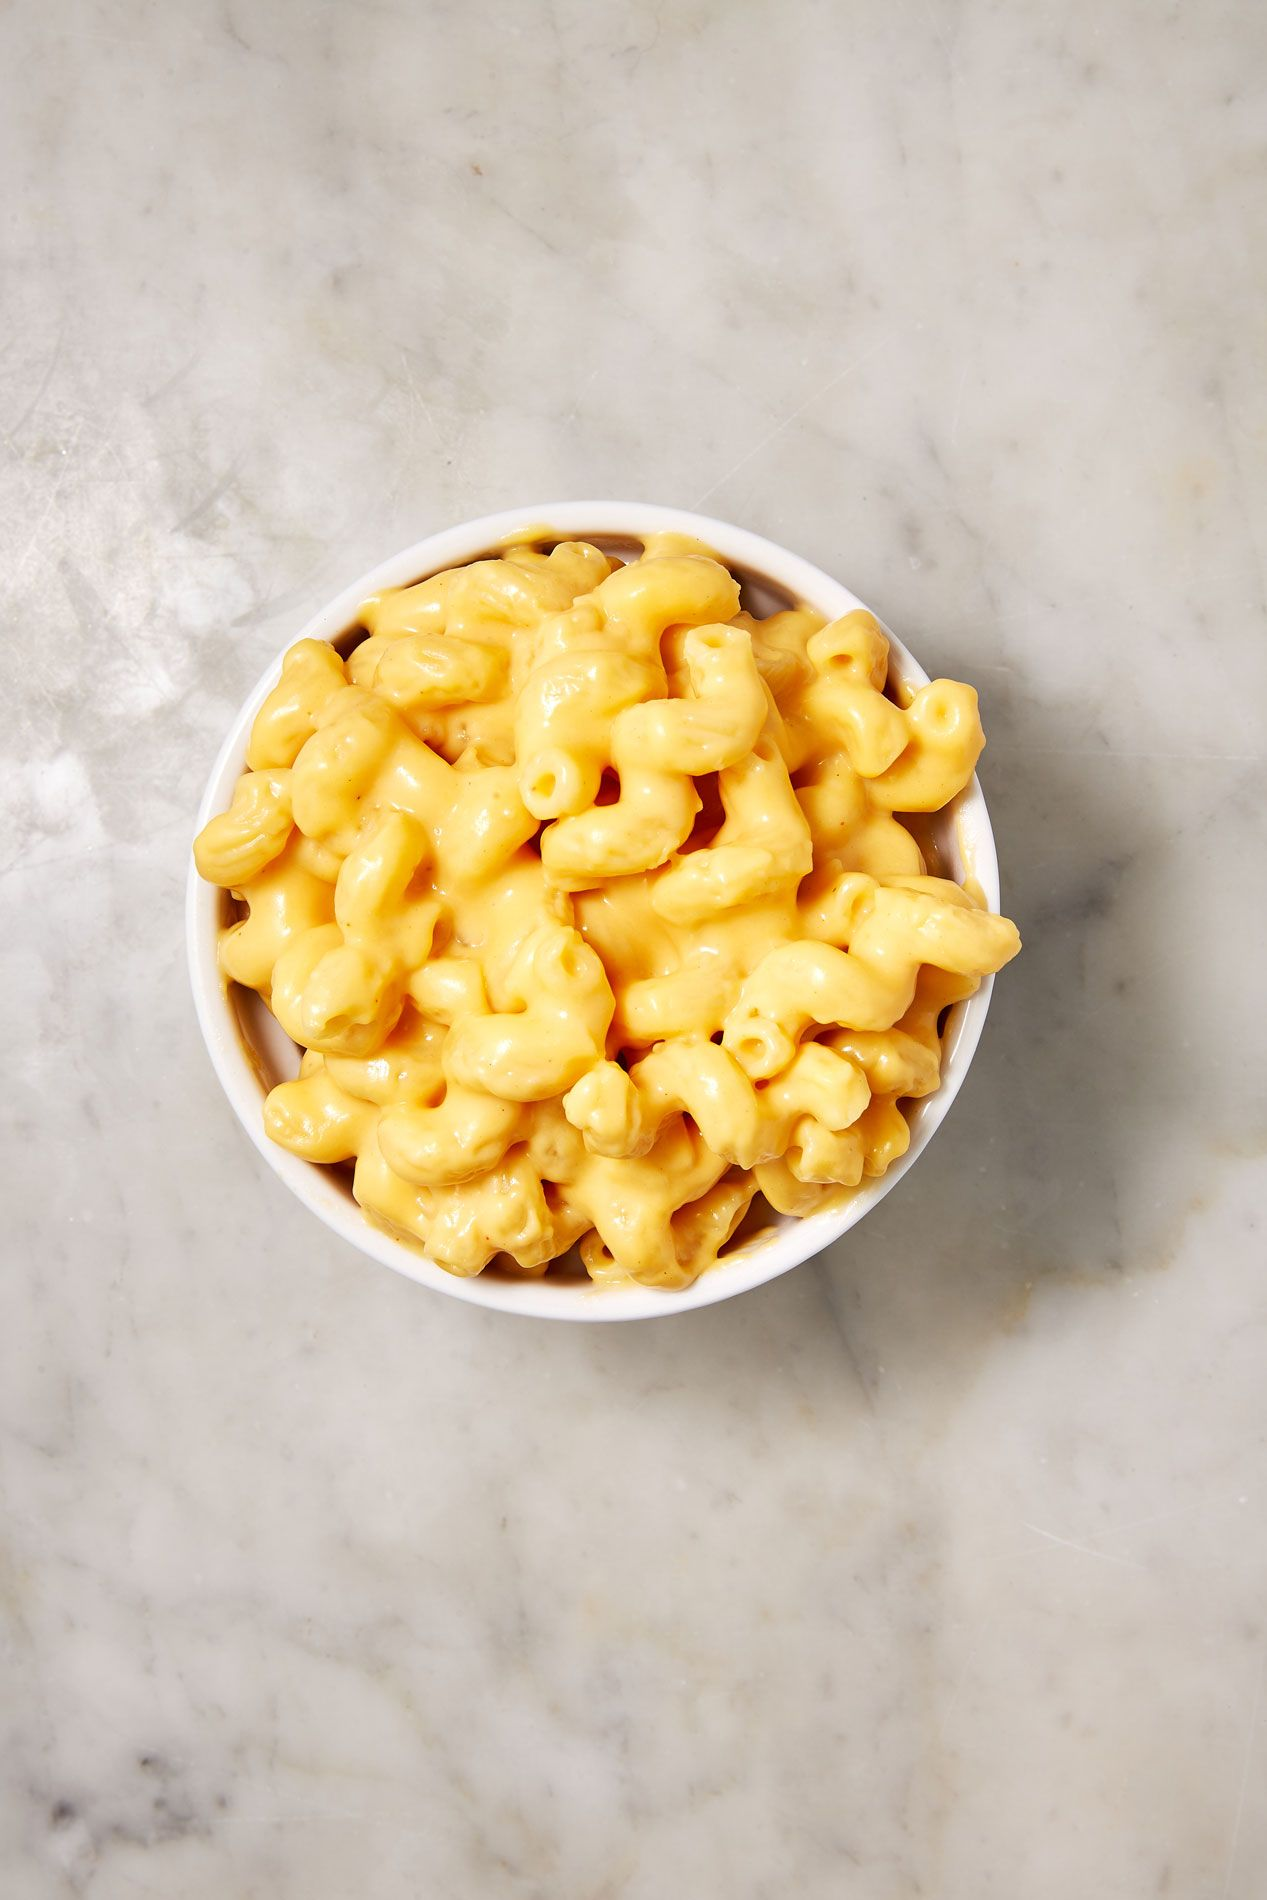 THANK YOU FOR VOTING FOR MAKINZE S MAC CHEESE